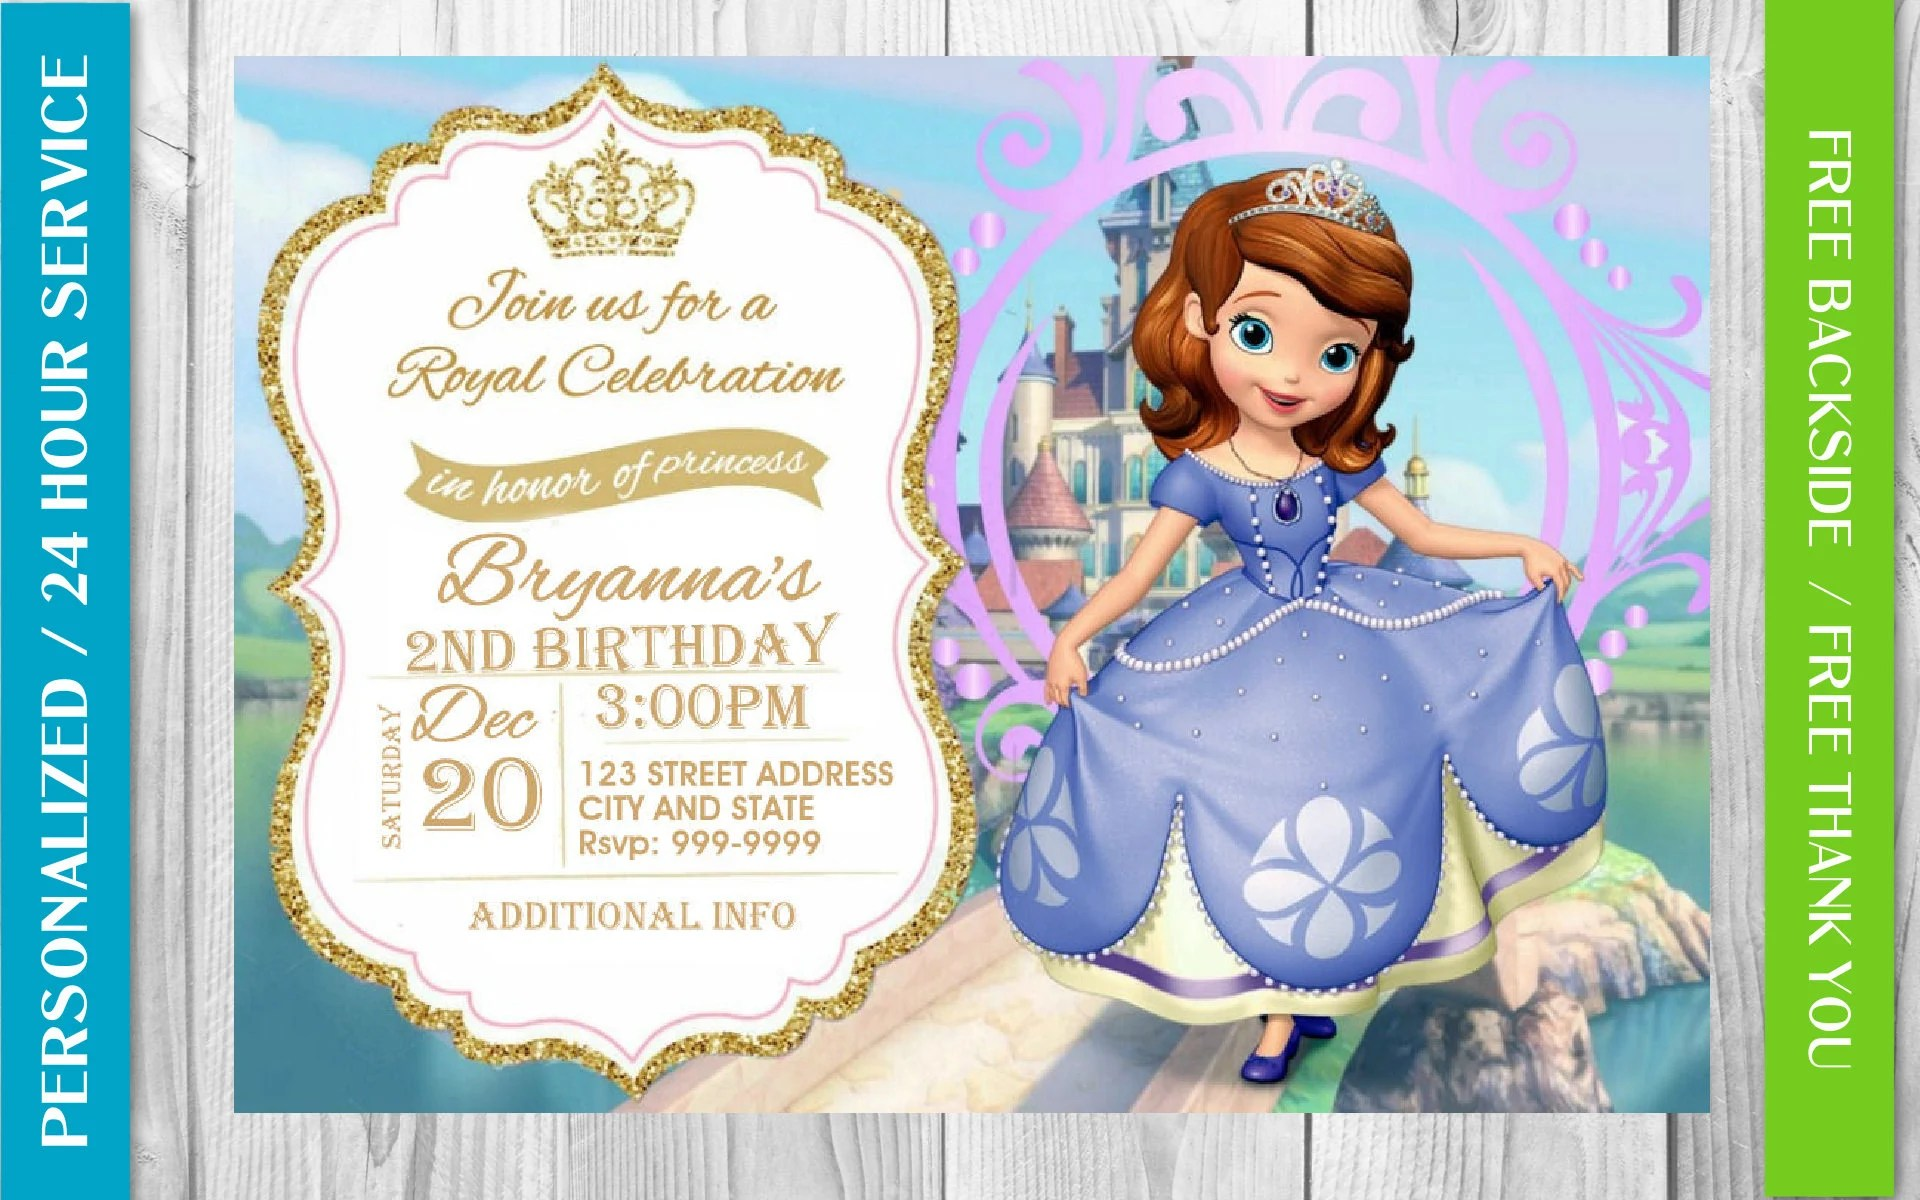 sofia the first invitation etsy